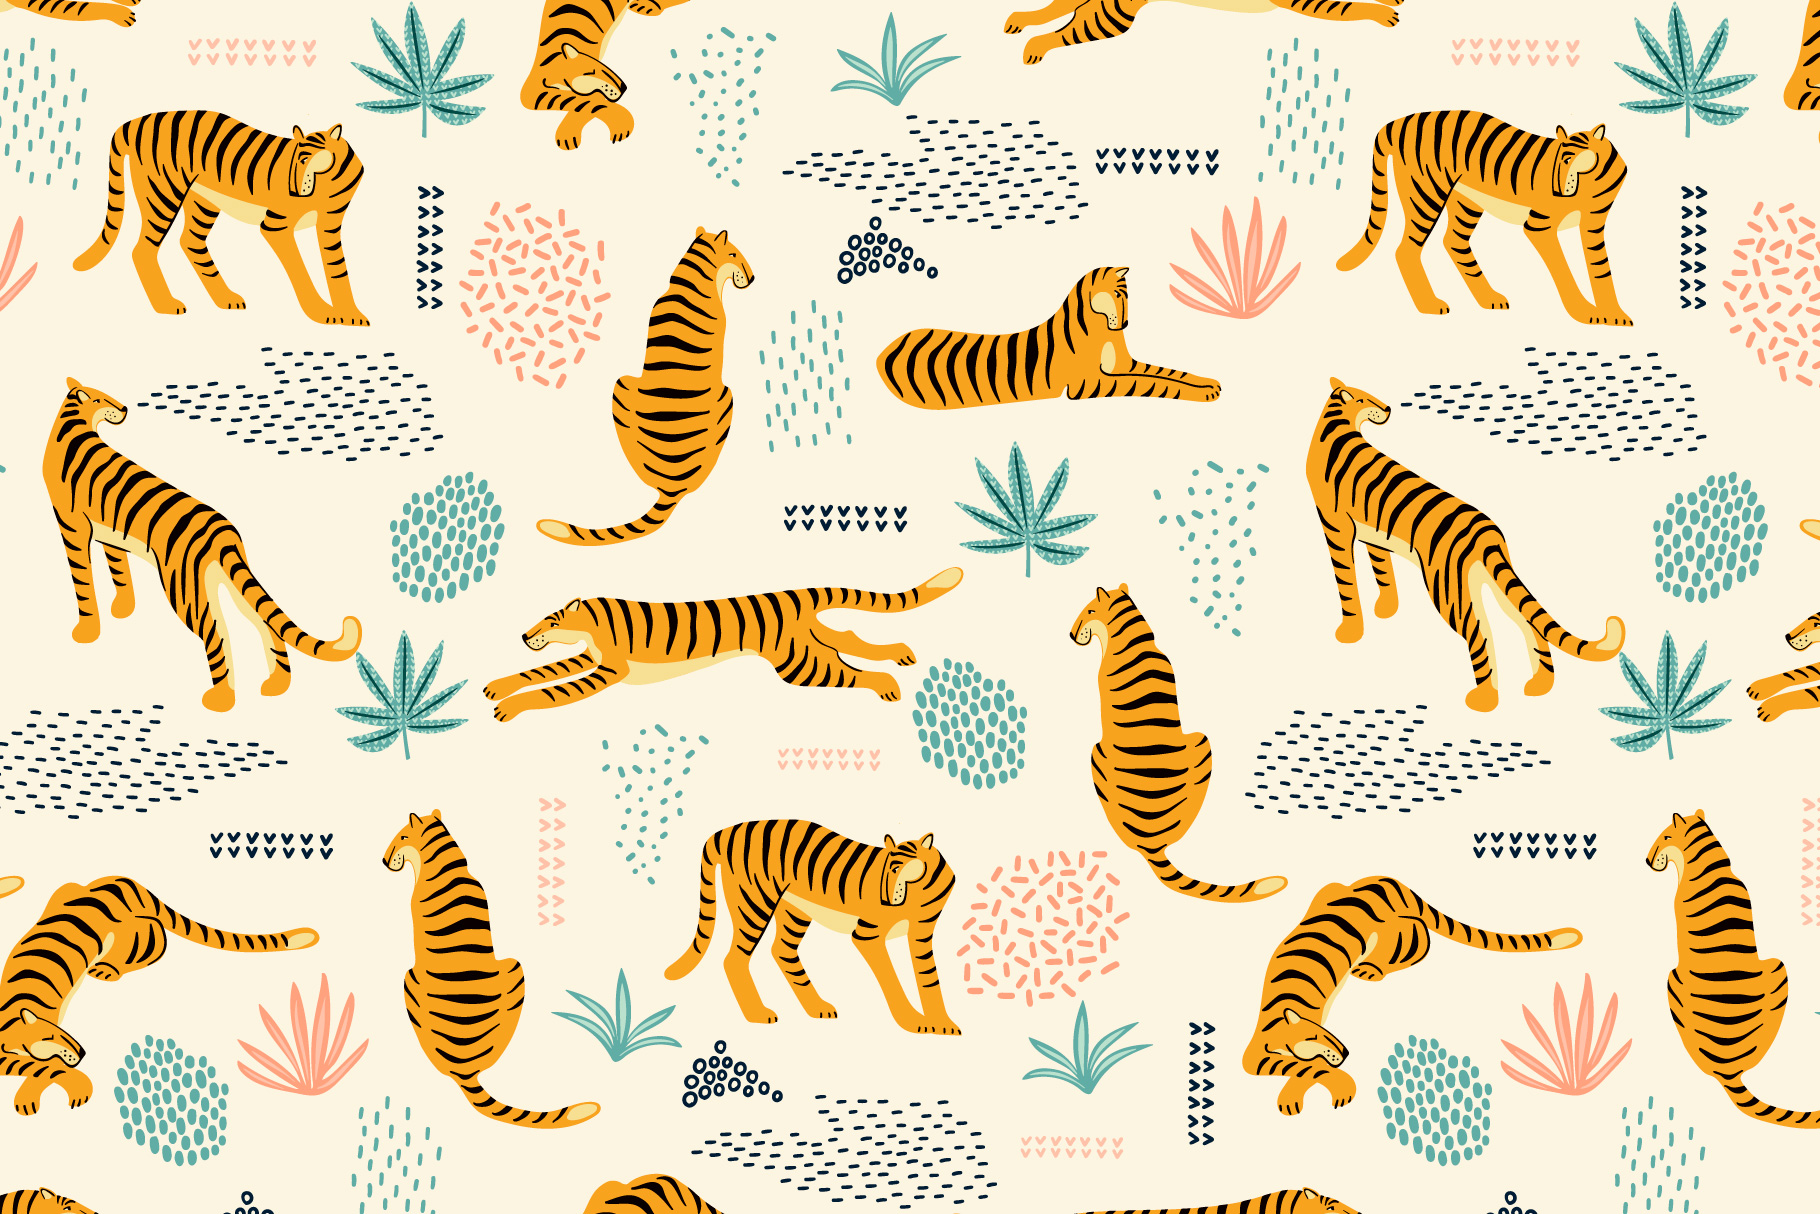 Tiger collection. Patterns & clipart example image 5